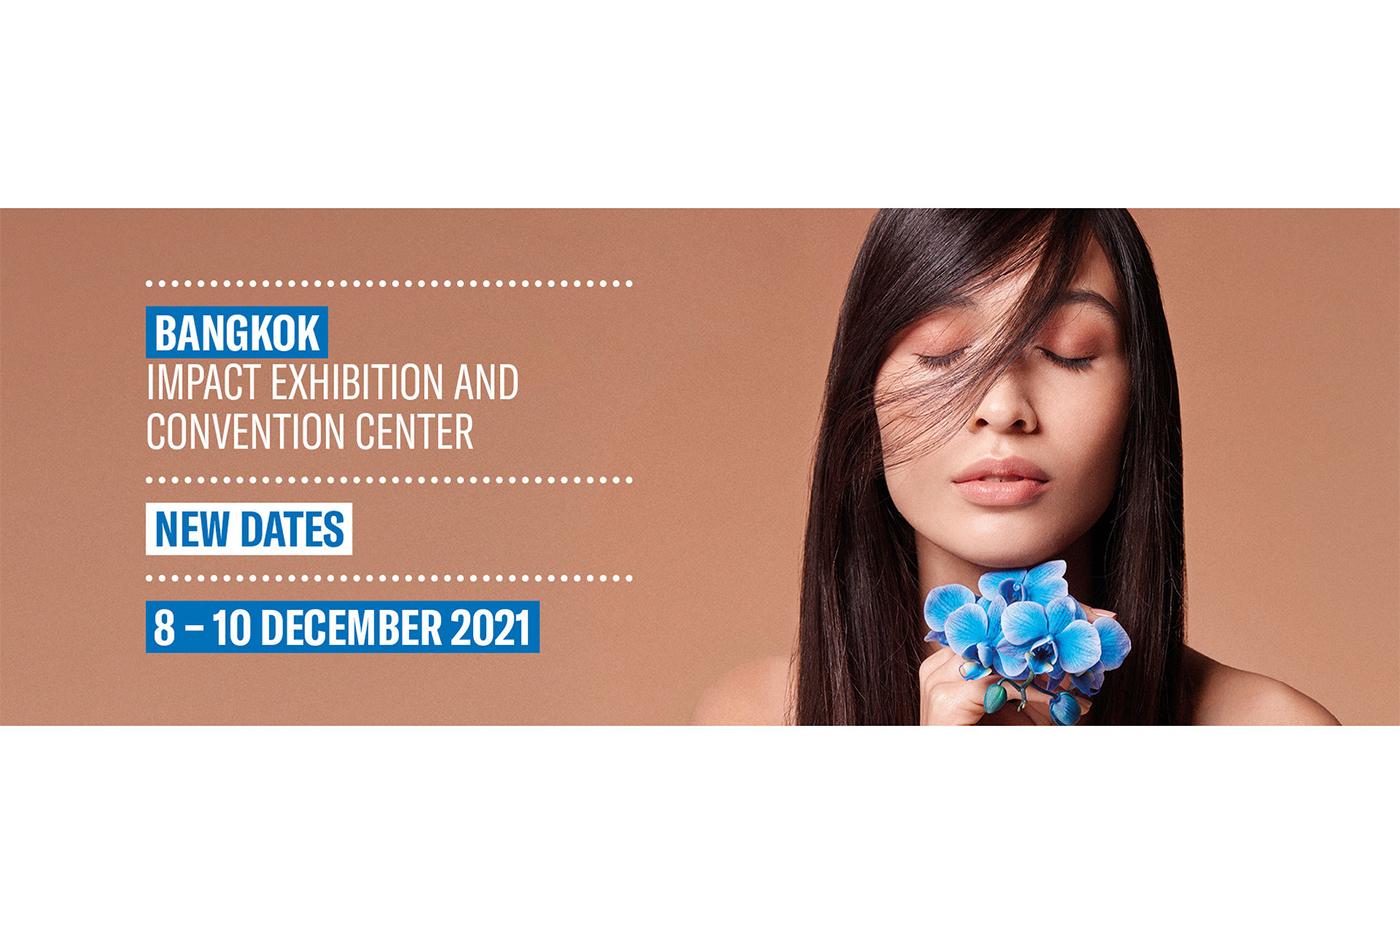 Cosmoprof CBE ASEAN rescheduled to December 8-10, 2021